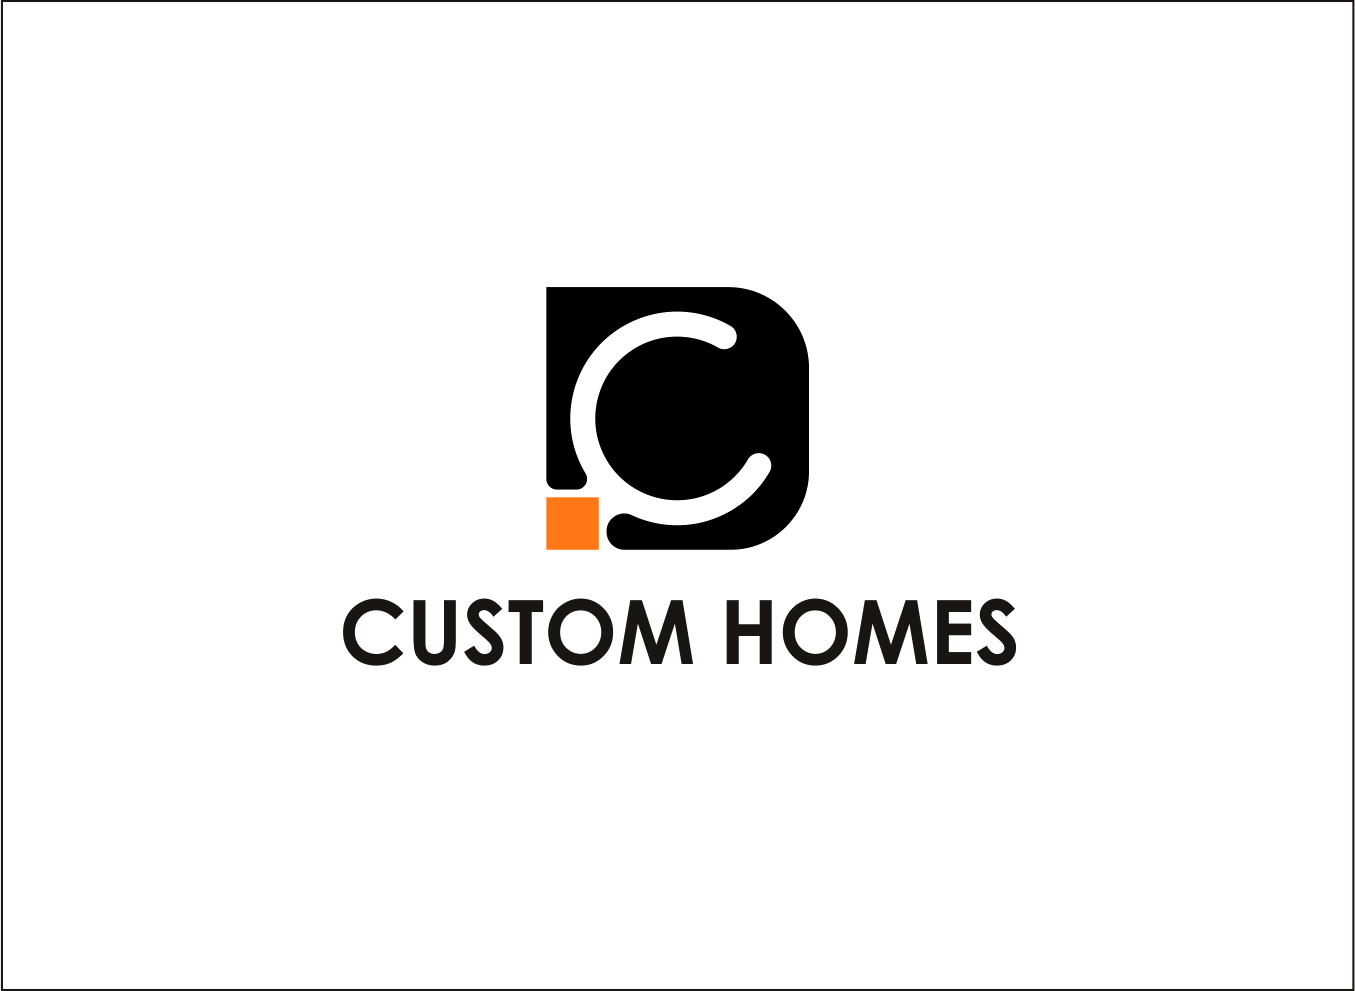 Logo Design by Armada Jamaluddin - Entry No. 85 in the Logo Design Contest Creative Logo Design for DC Custom Homes.